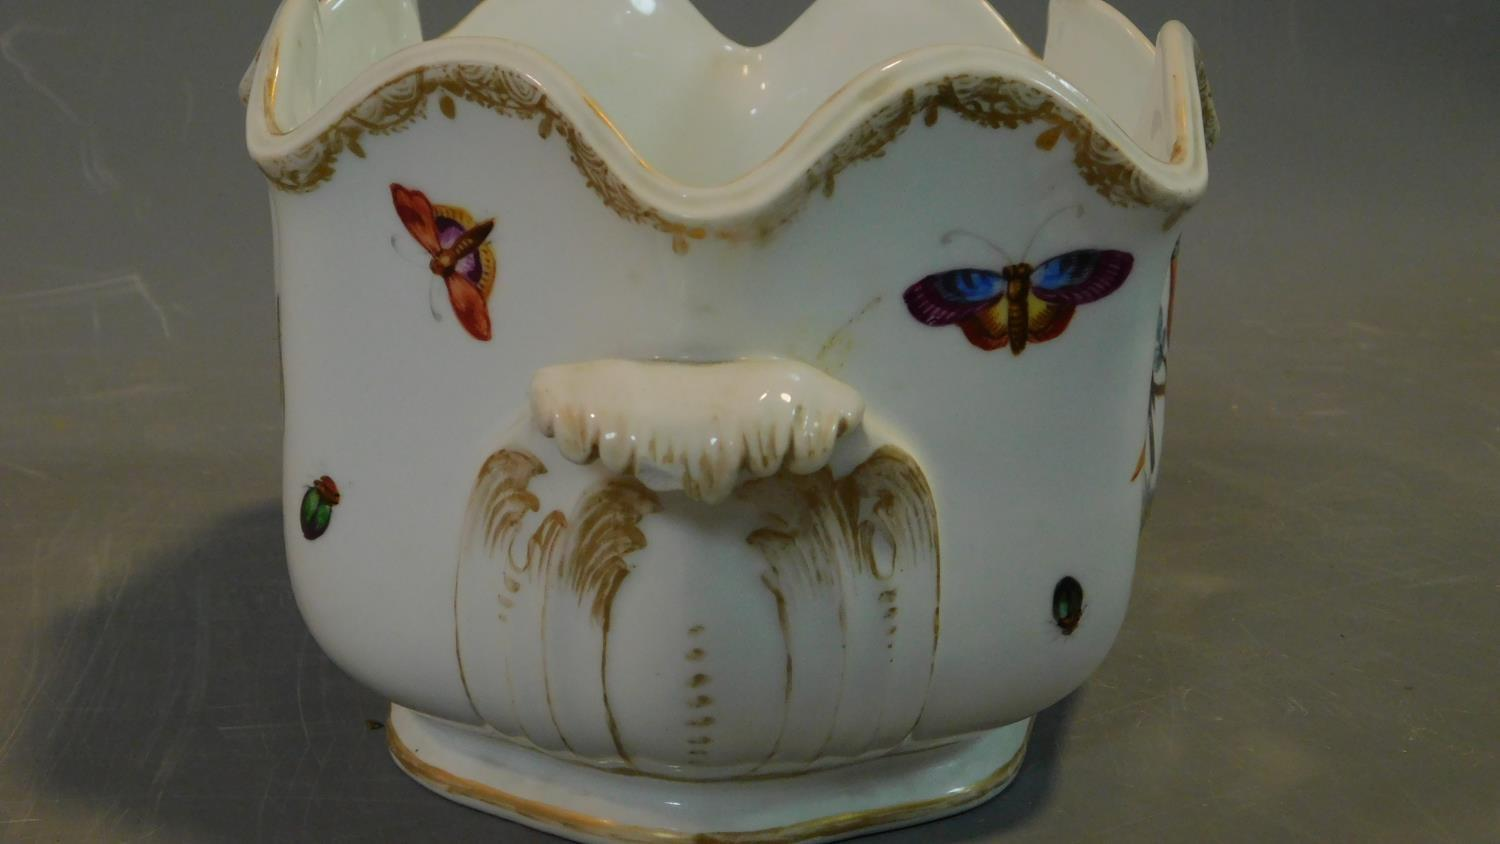 A Meissen style porcelain vase, hand painted with bird decoration. 14x18cm - Image 5 of 9